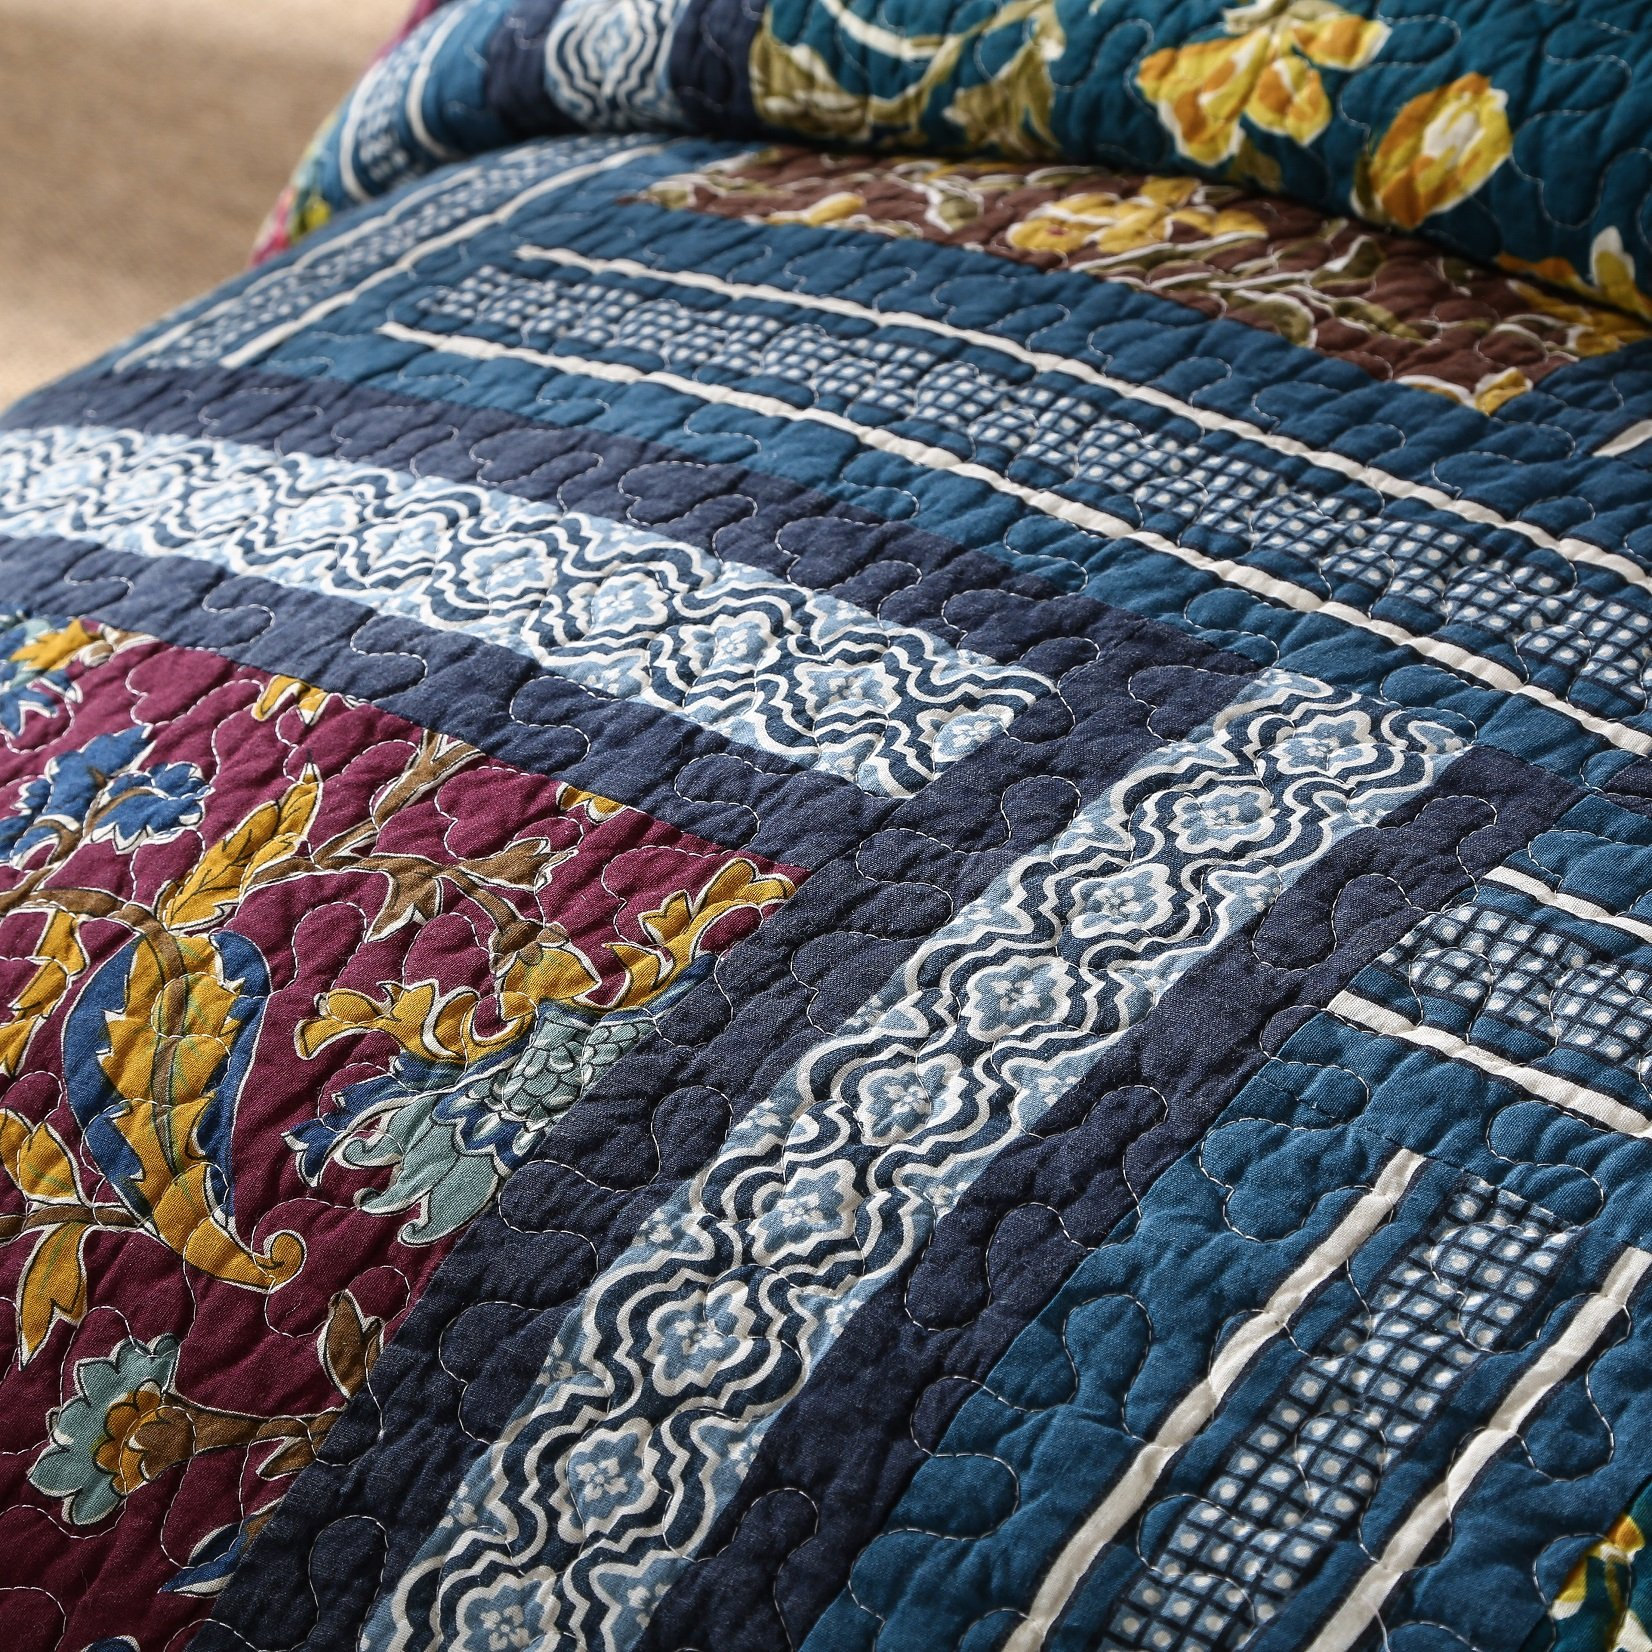 DaDa Bedding Bohemian Midnight Ocean Blue Sea Reversible Real Patchwork Quilted Bedspread Set - Dark Navy Floral Multi-Color Print - Queen - 3-Pieces by DaDa Bedding Collection (Image #3)